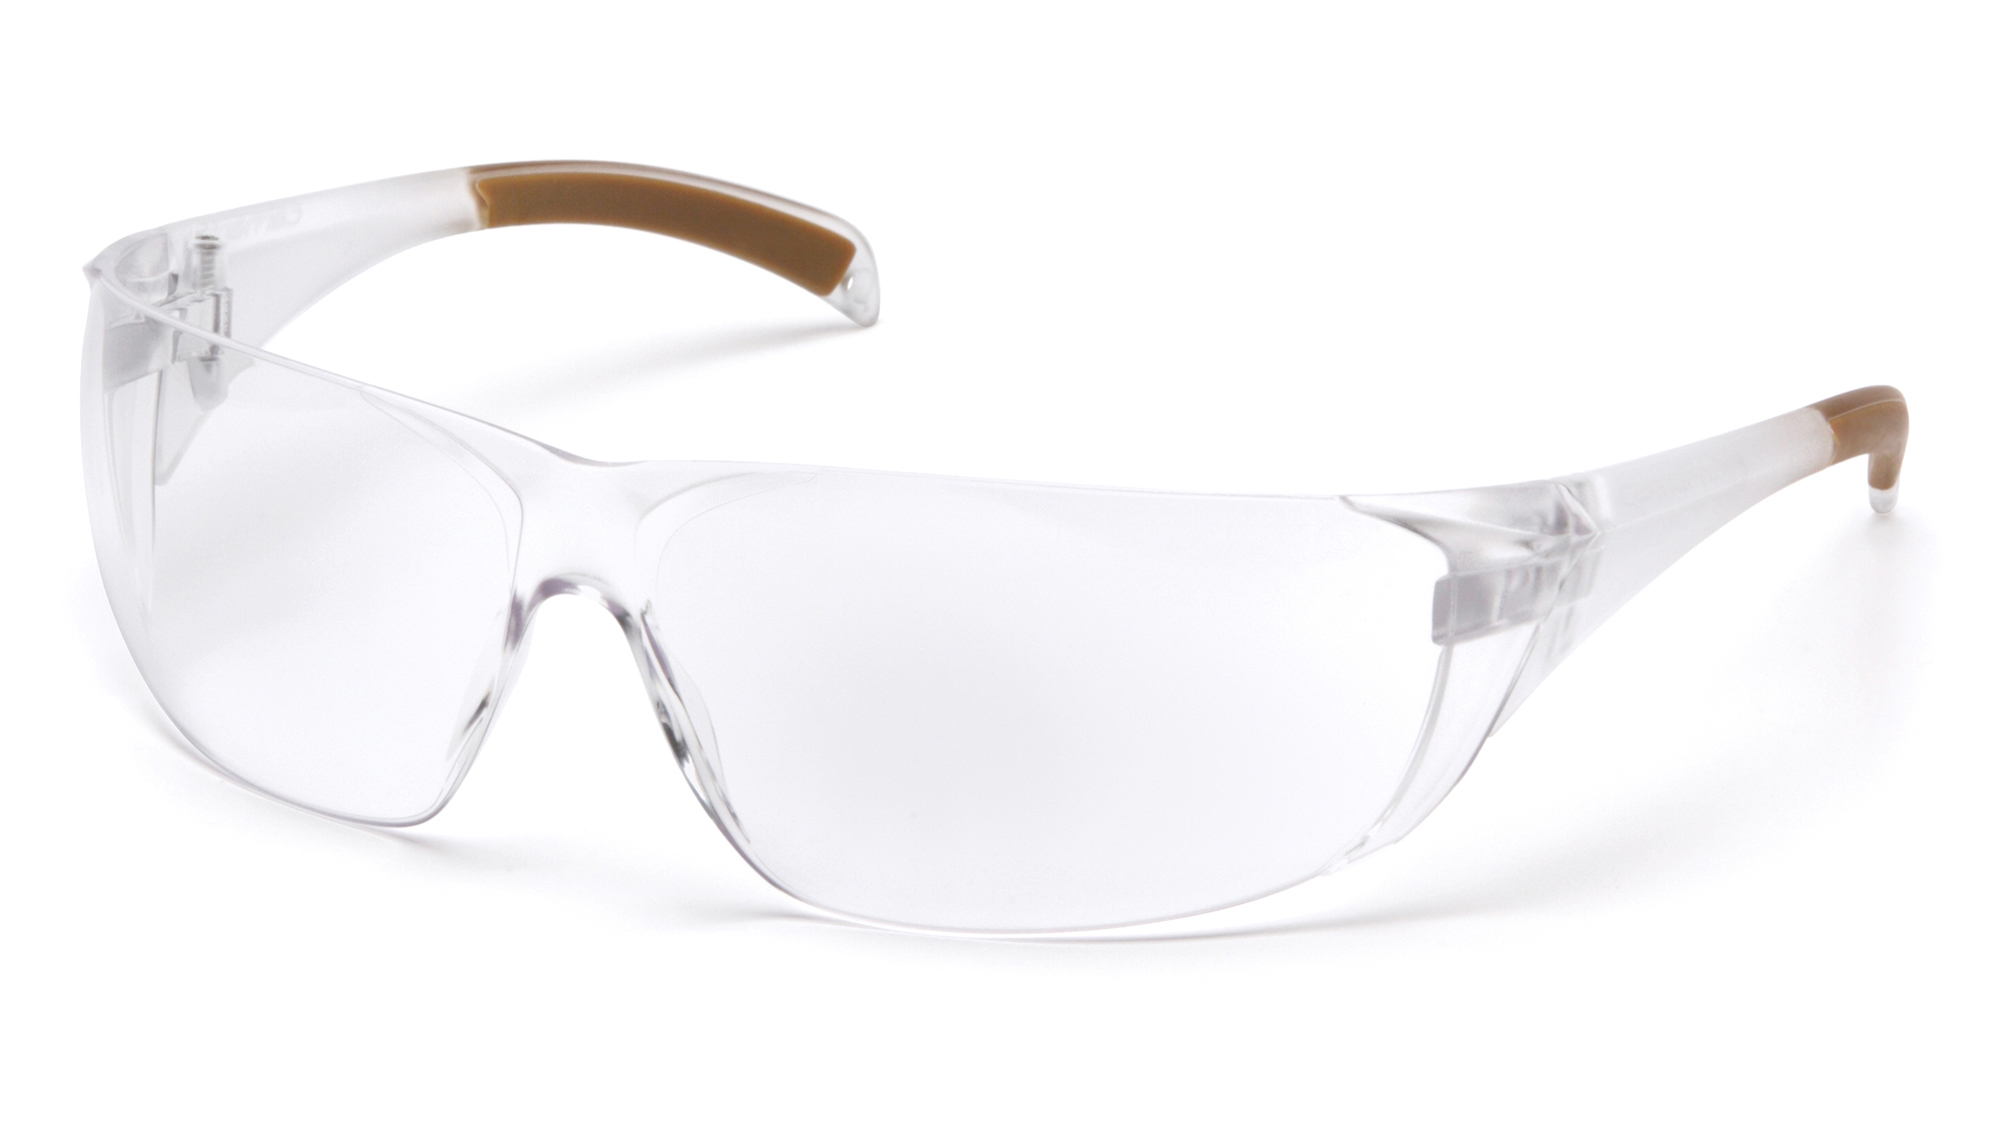 Carhartt Billings Clear Anti-Fog Lens Safety Glasses -Safety Glasses